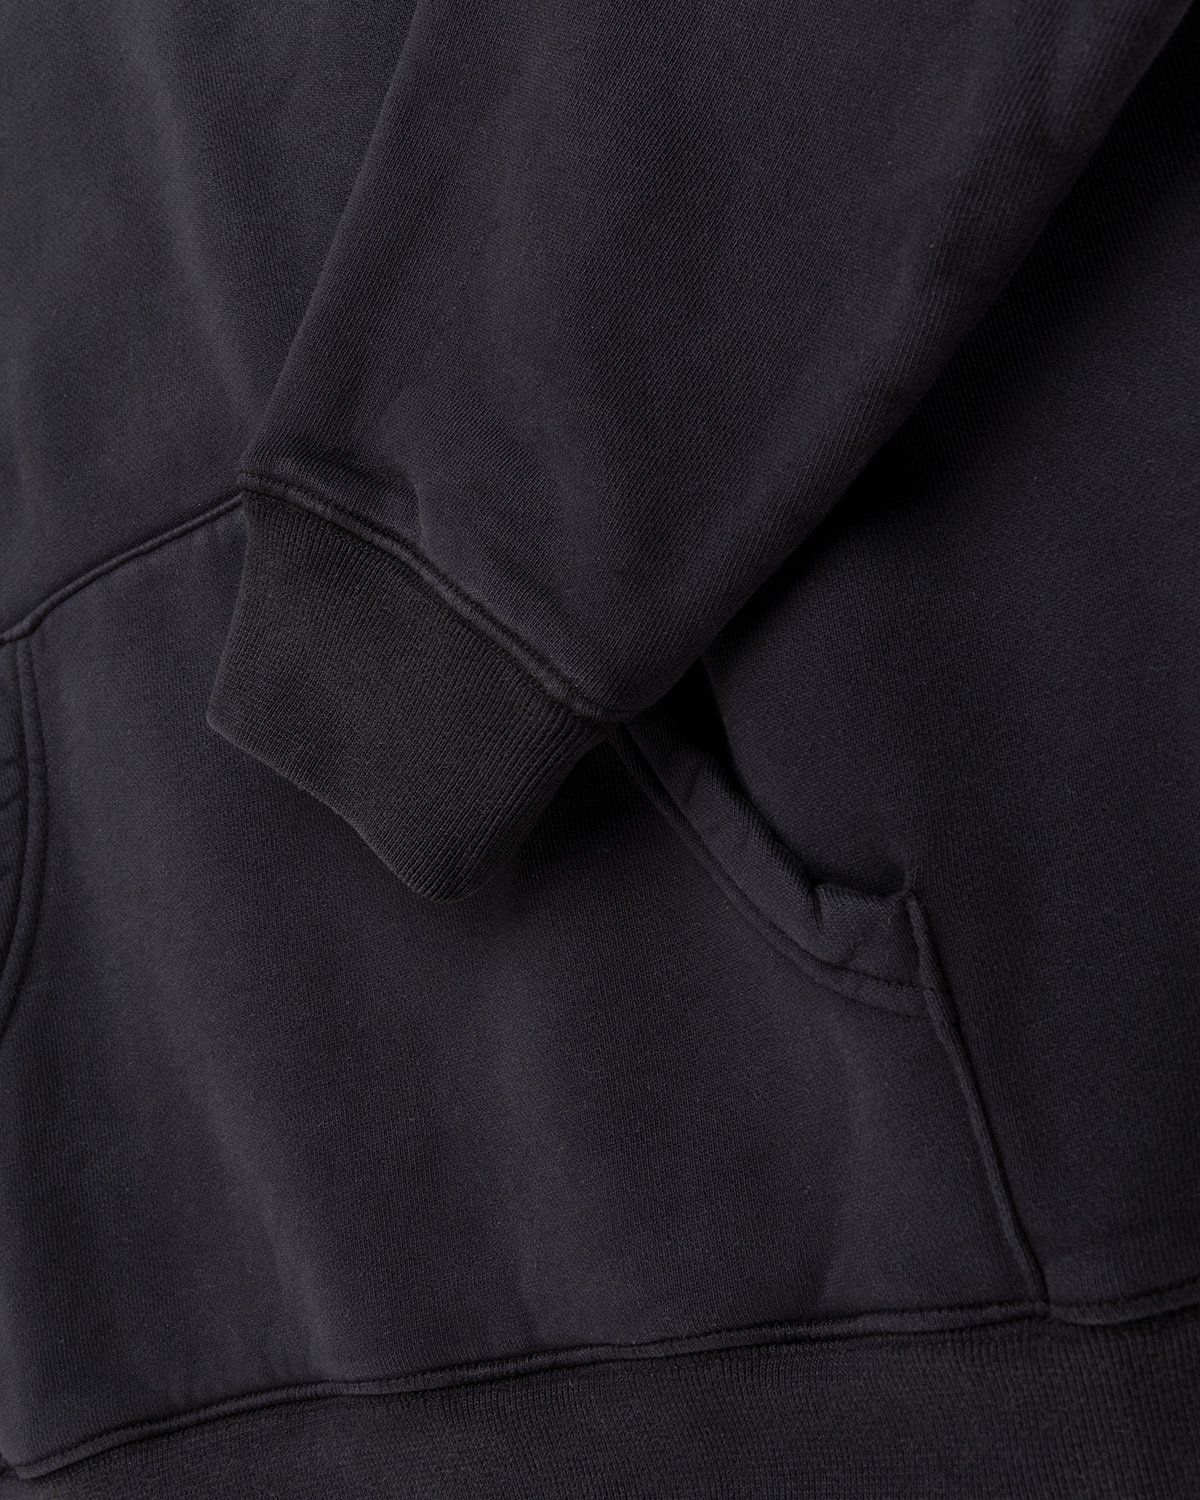 PATTA – This Or That Hooded Sweater Black - Image 4